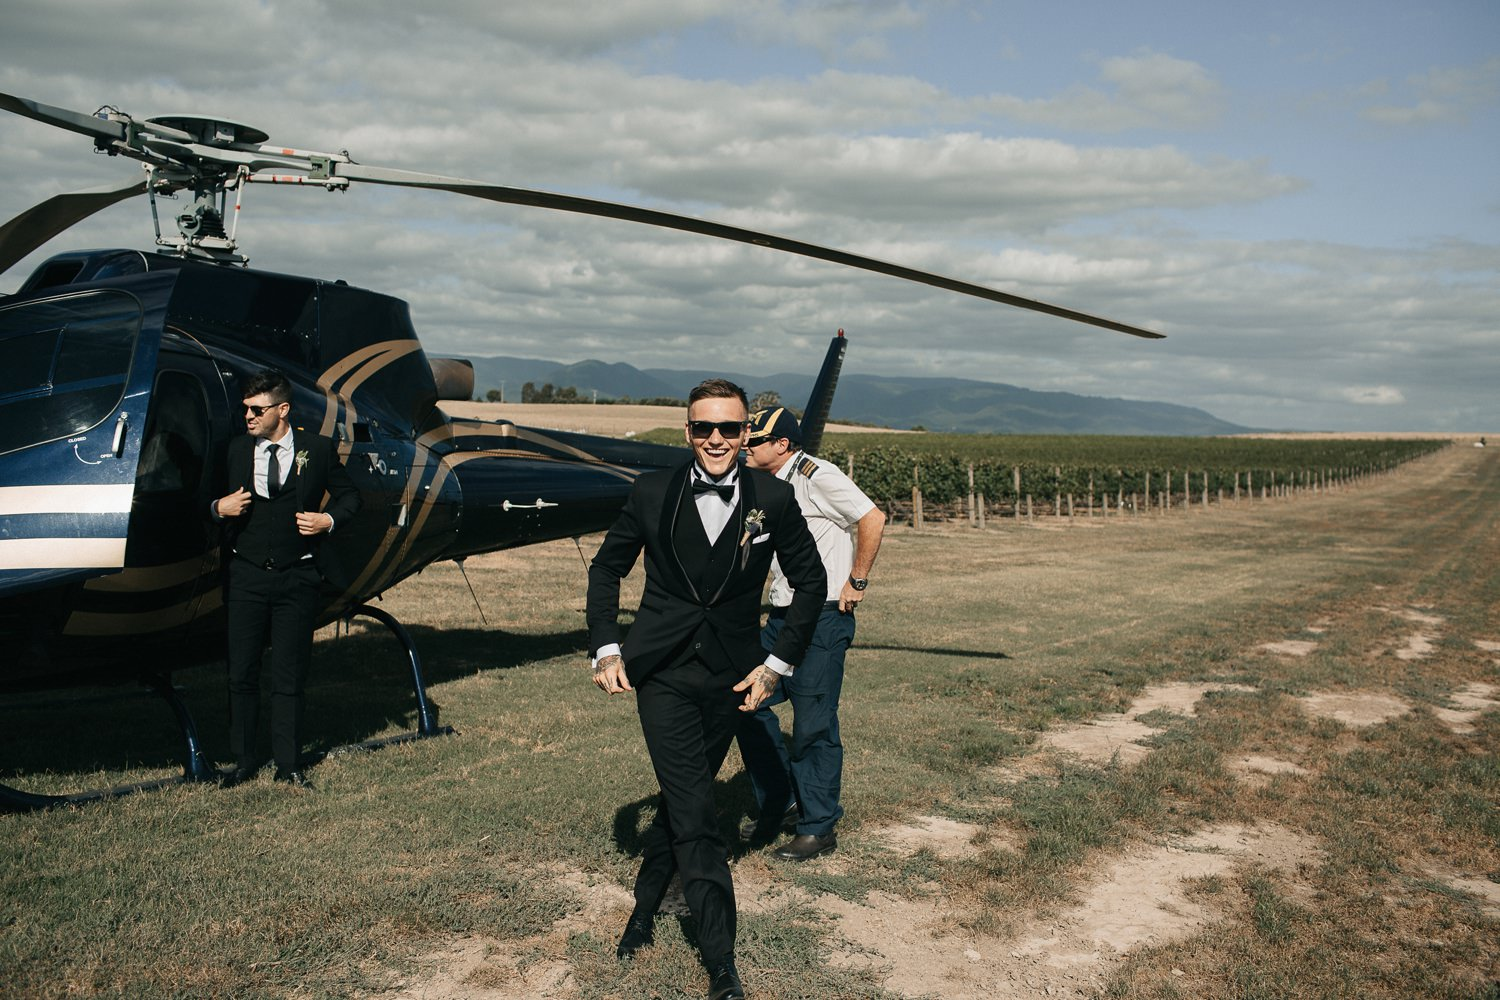 zonzo-estate-yarra-valley-wedding-photographer_0041.jpg